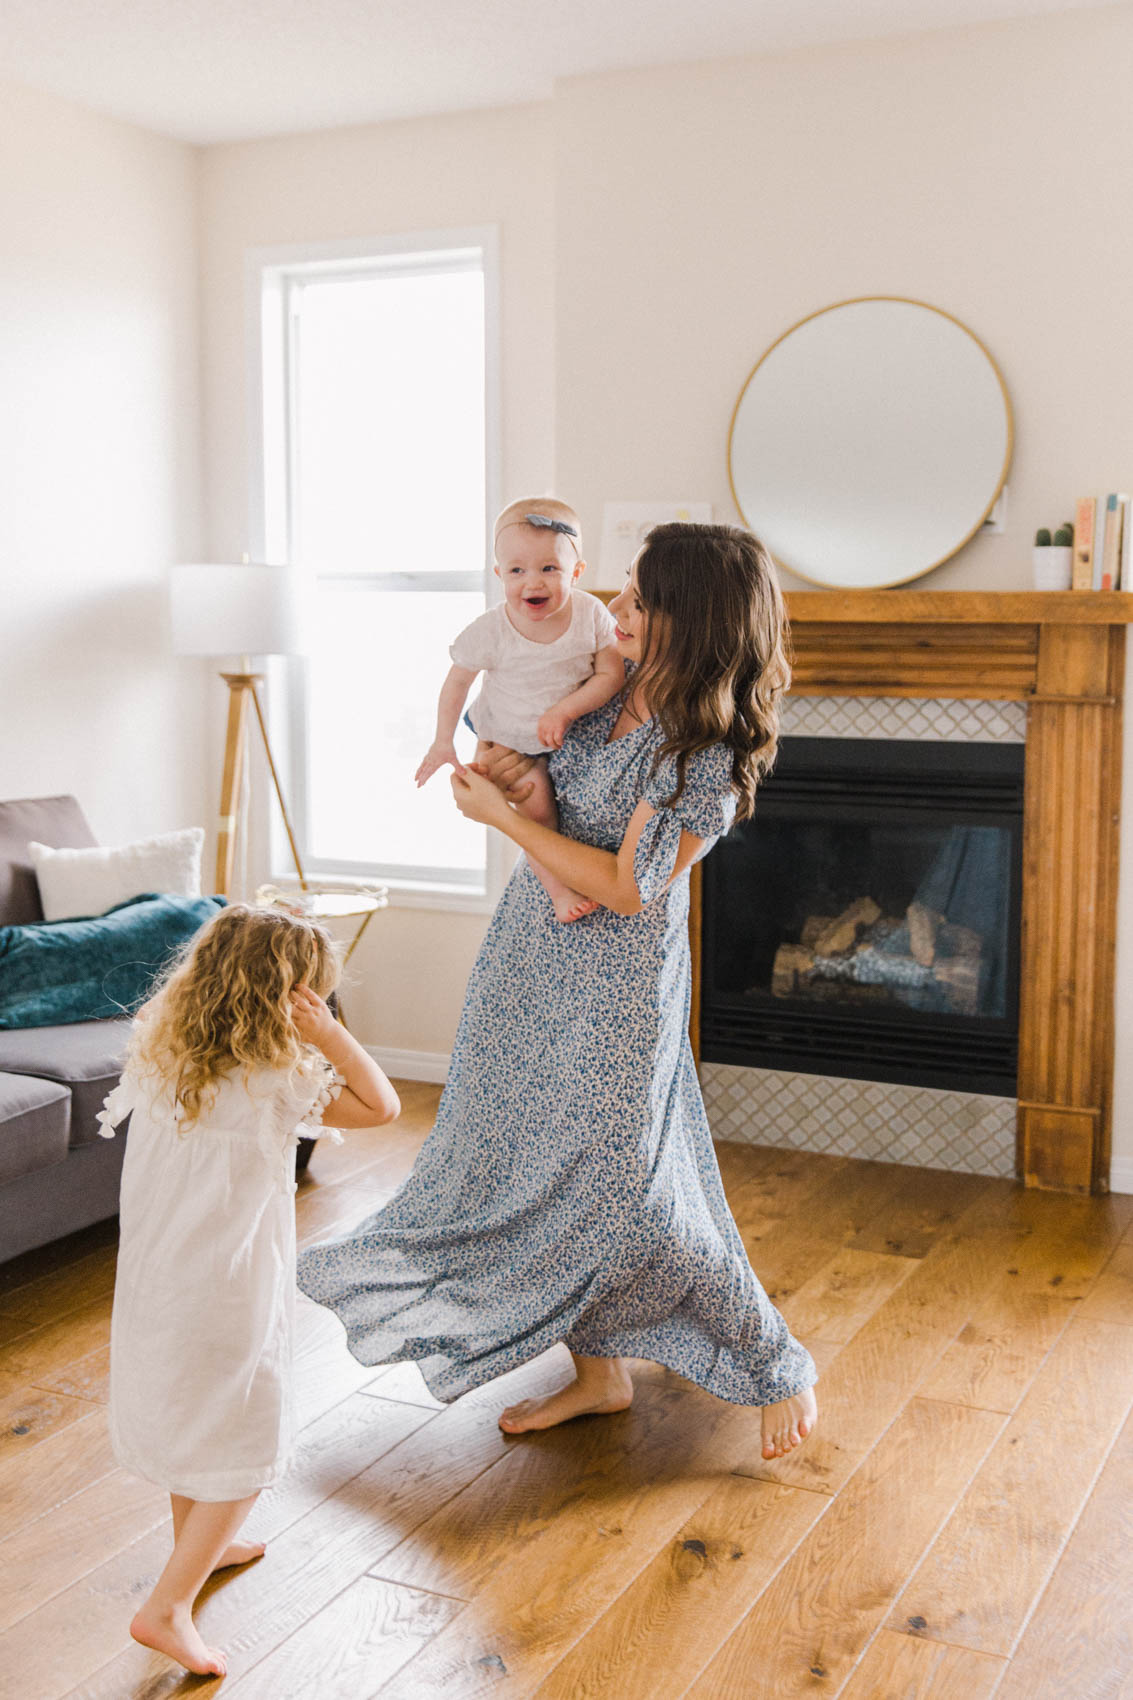 Calgary Motherhood Shoot Lifestyle Photographer Jennie Guenard Photography-44.jpg